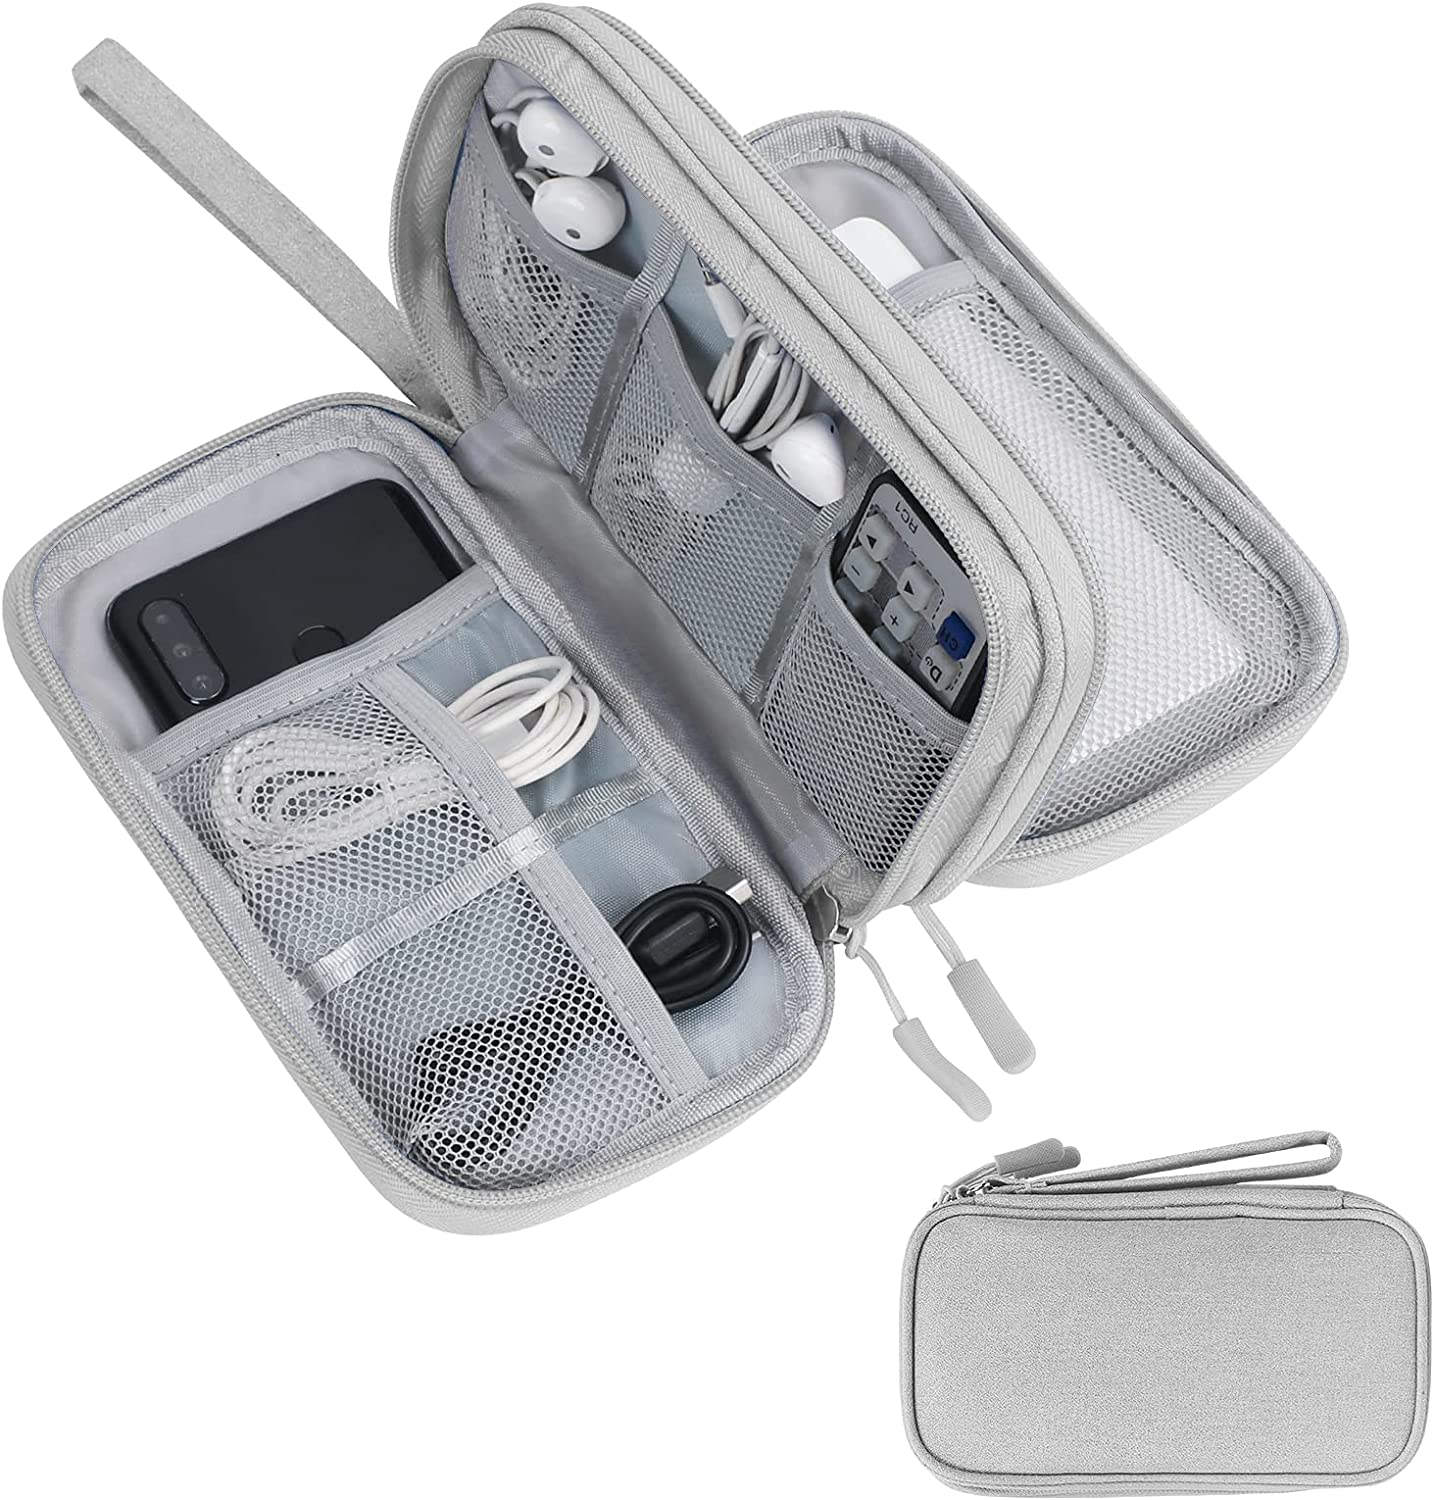 Skycase Travel Cable Organizer,Electronics Accessories Cases, All-in-One Storage Bag, Accessories Carry Bag for USB Data Cable,Earphone Wire,Power Bank, Phone,Grey